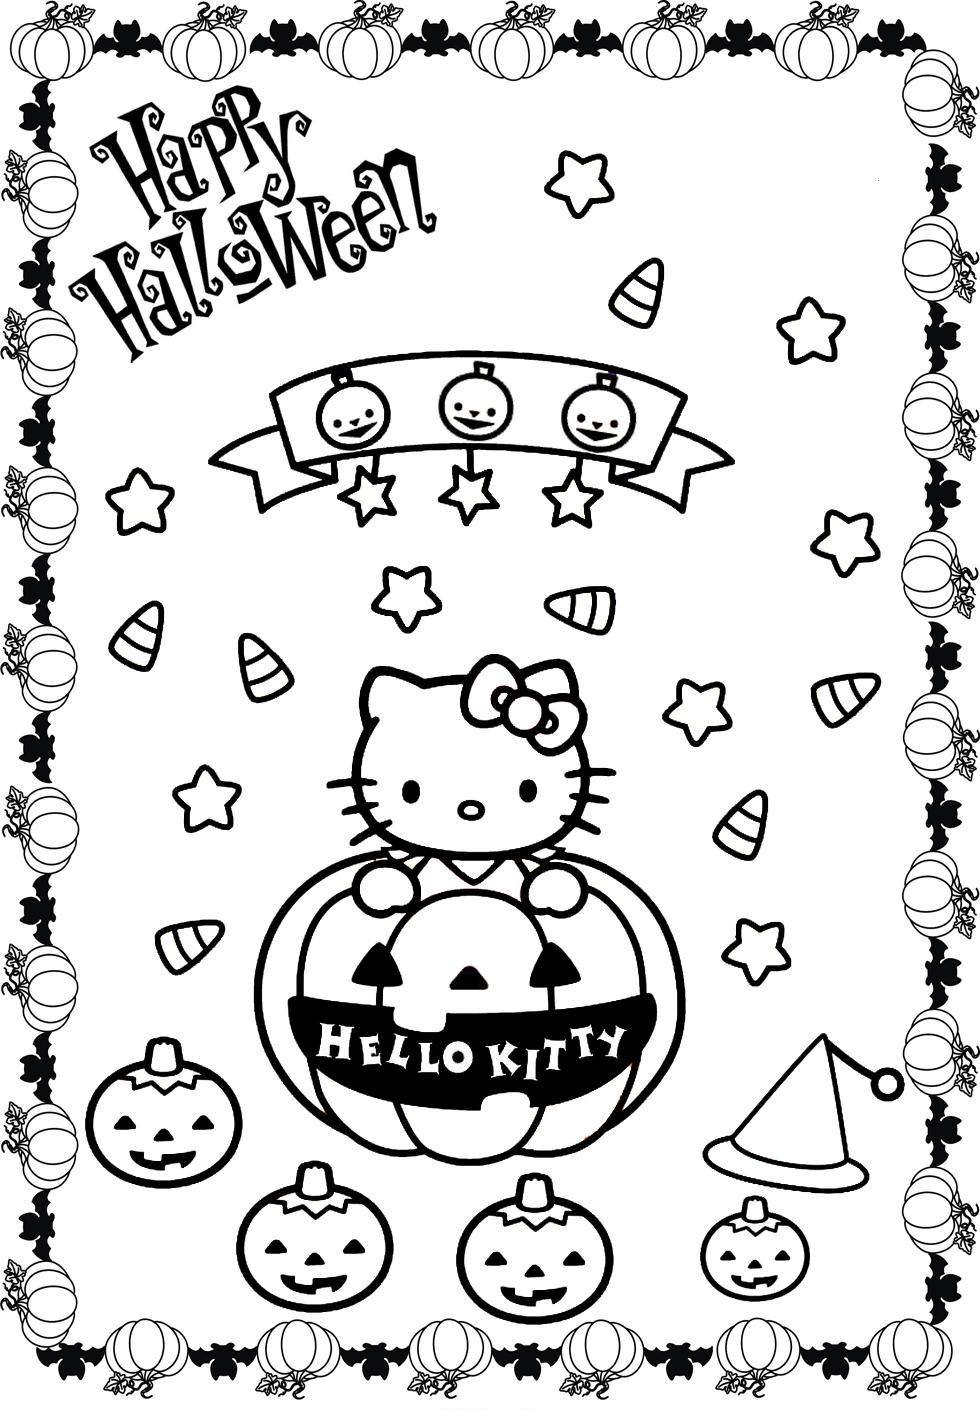 Halloween hello kitty free coloring pages for Hello kitty fall coloring pages